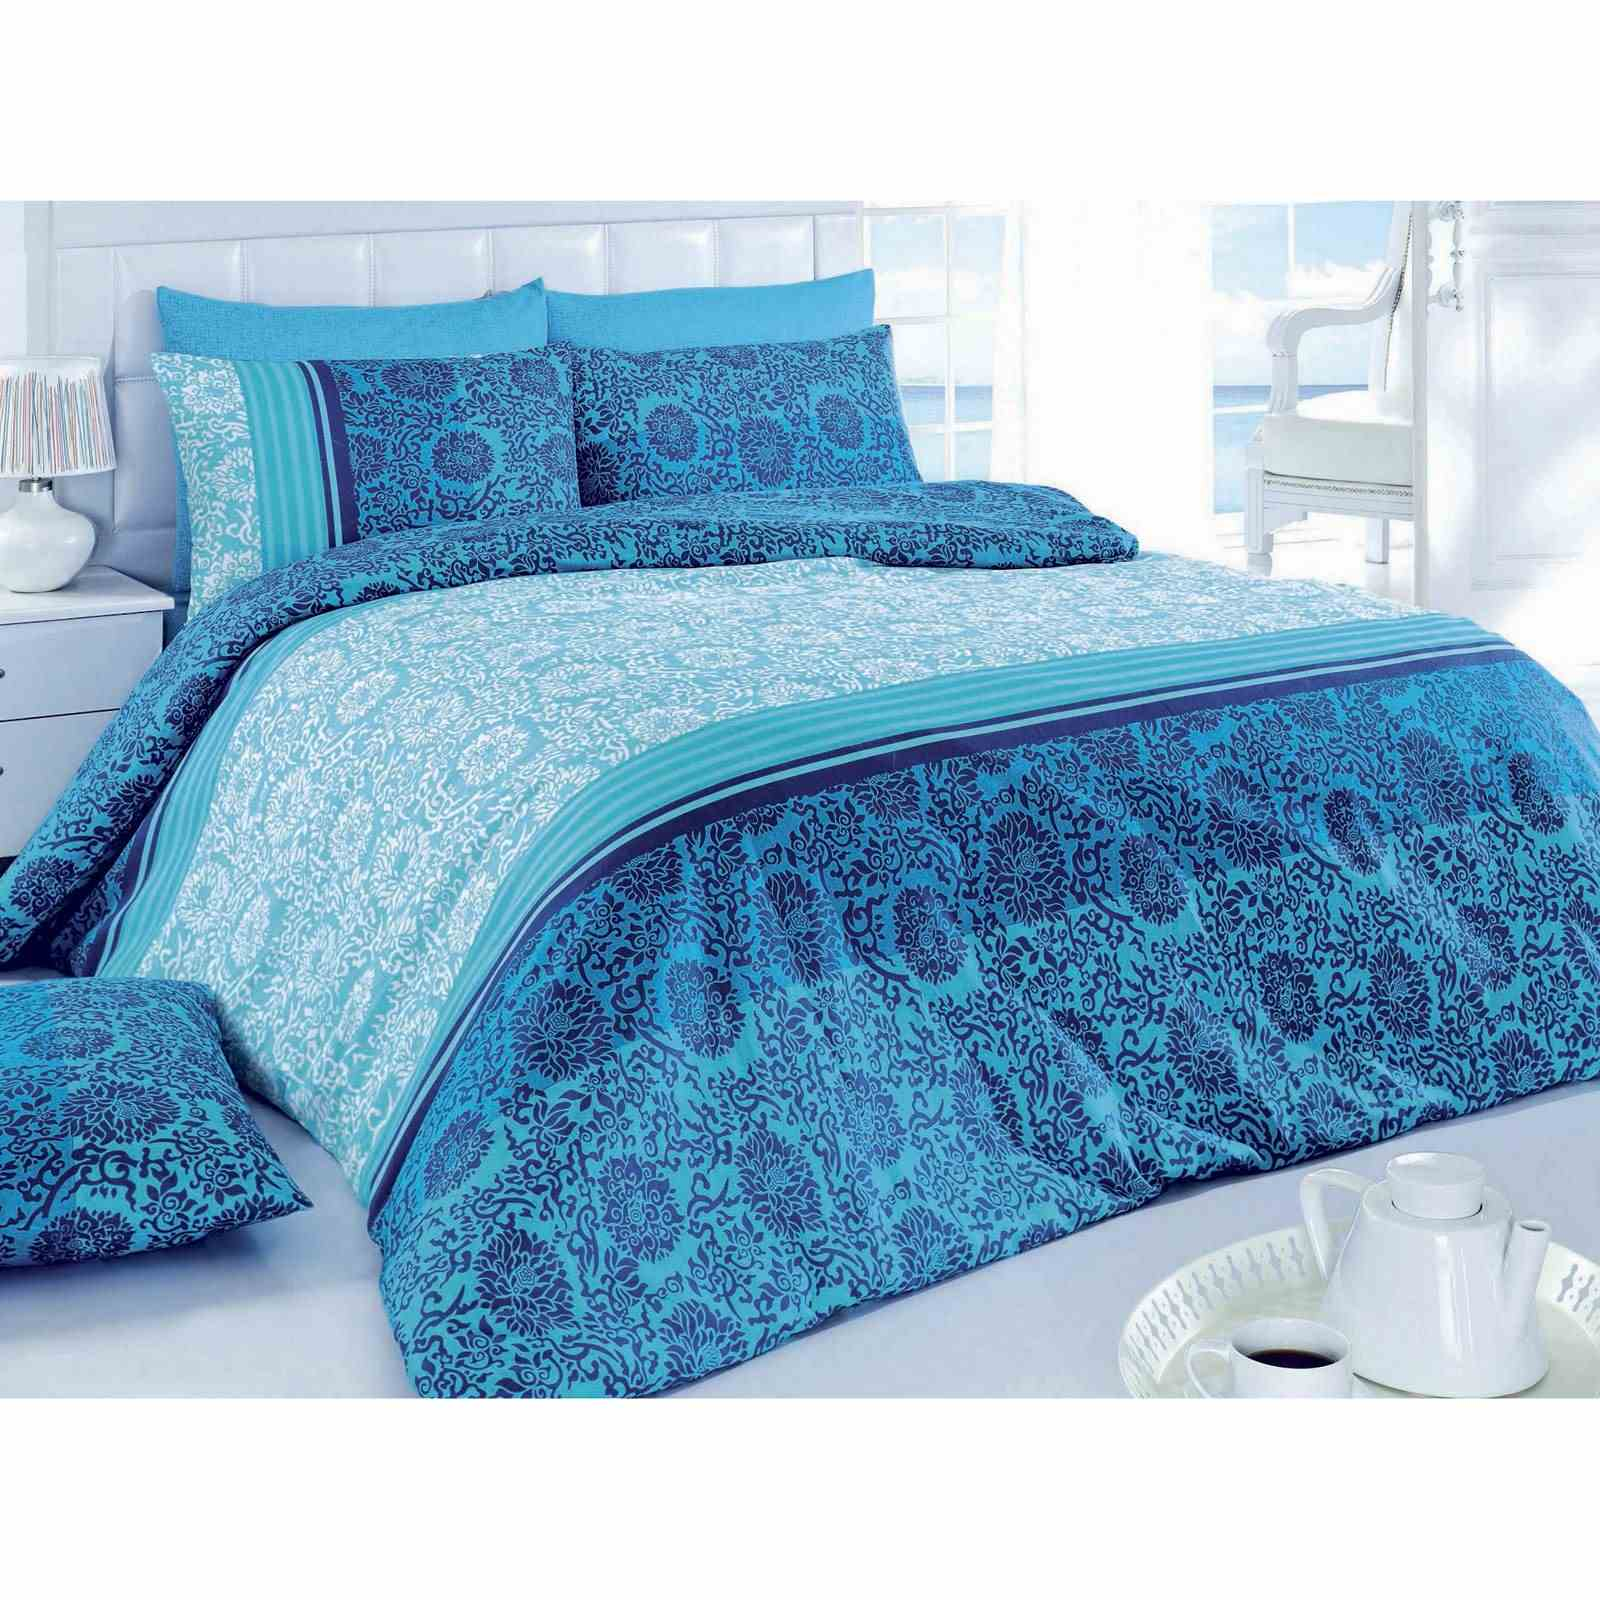 pearl home parure de lit bleu brandalley. Black Bedroom Furniture Sets. Home Design Ideas